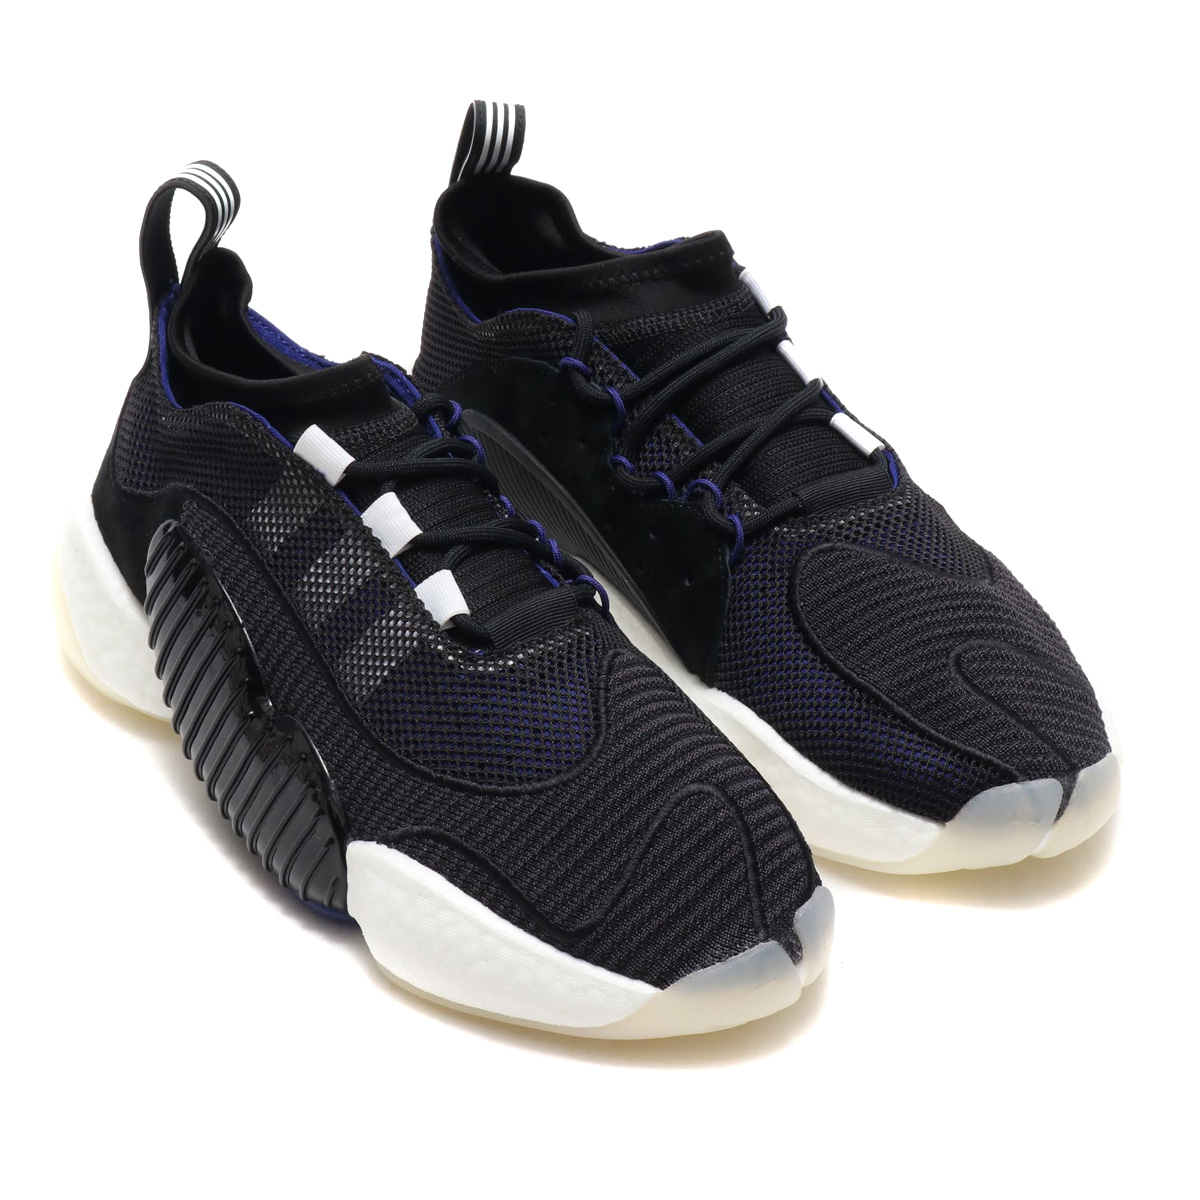 49a8fa3d4c1 atmos pink  adidas Originals CRAZY BYW LVL II (Adidas originals crazy BYW  LVL1) CORE BLACK REAL PURPLE RUNNING WHITE 18FW-I